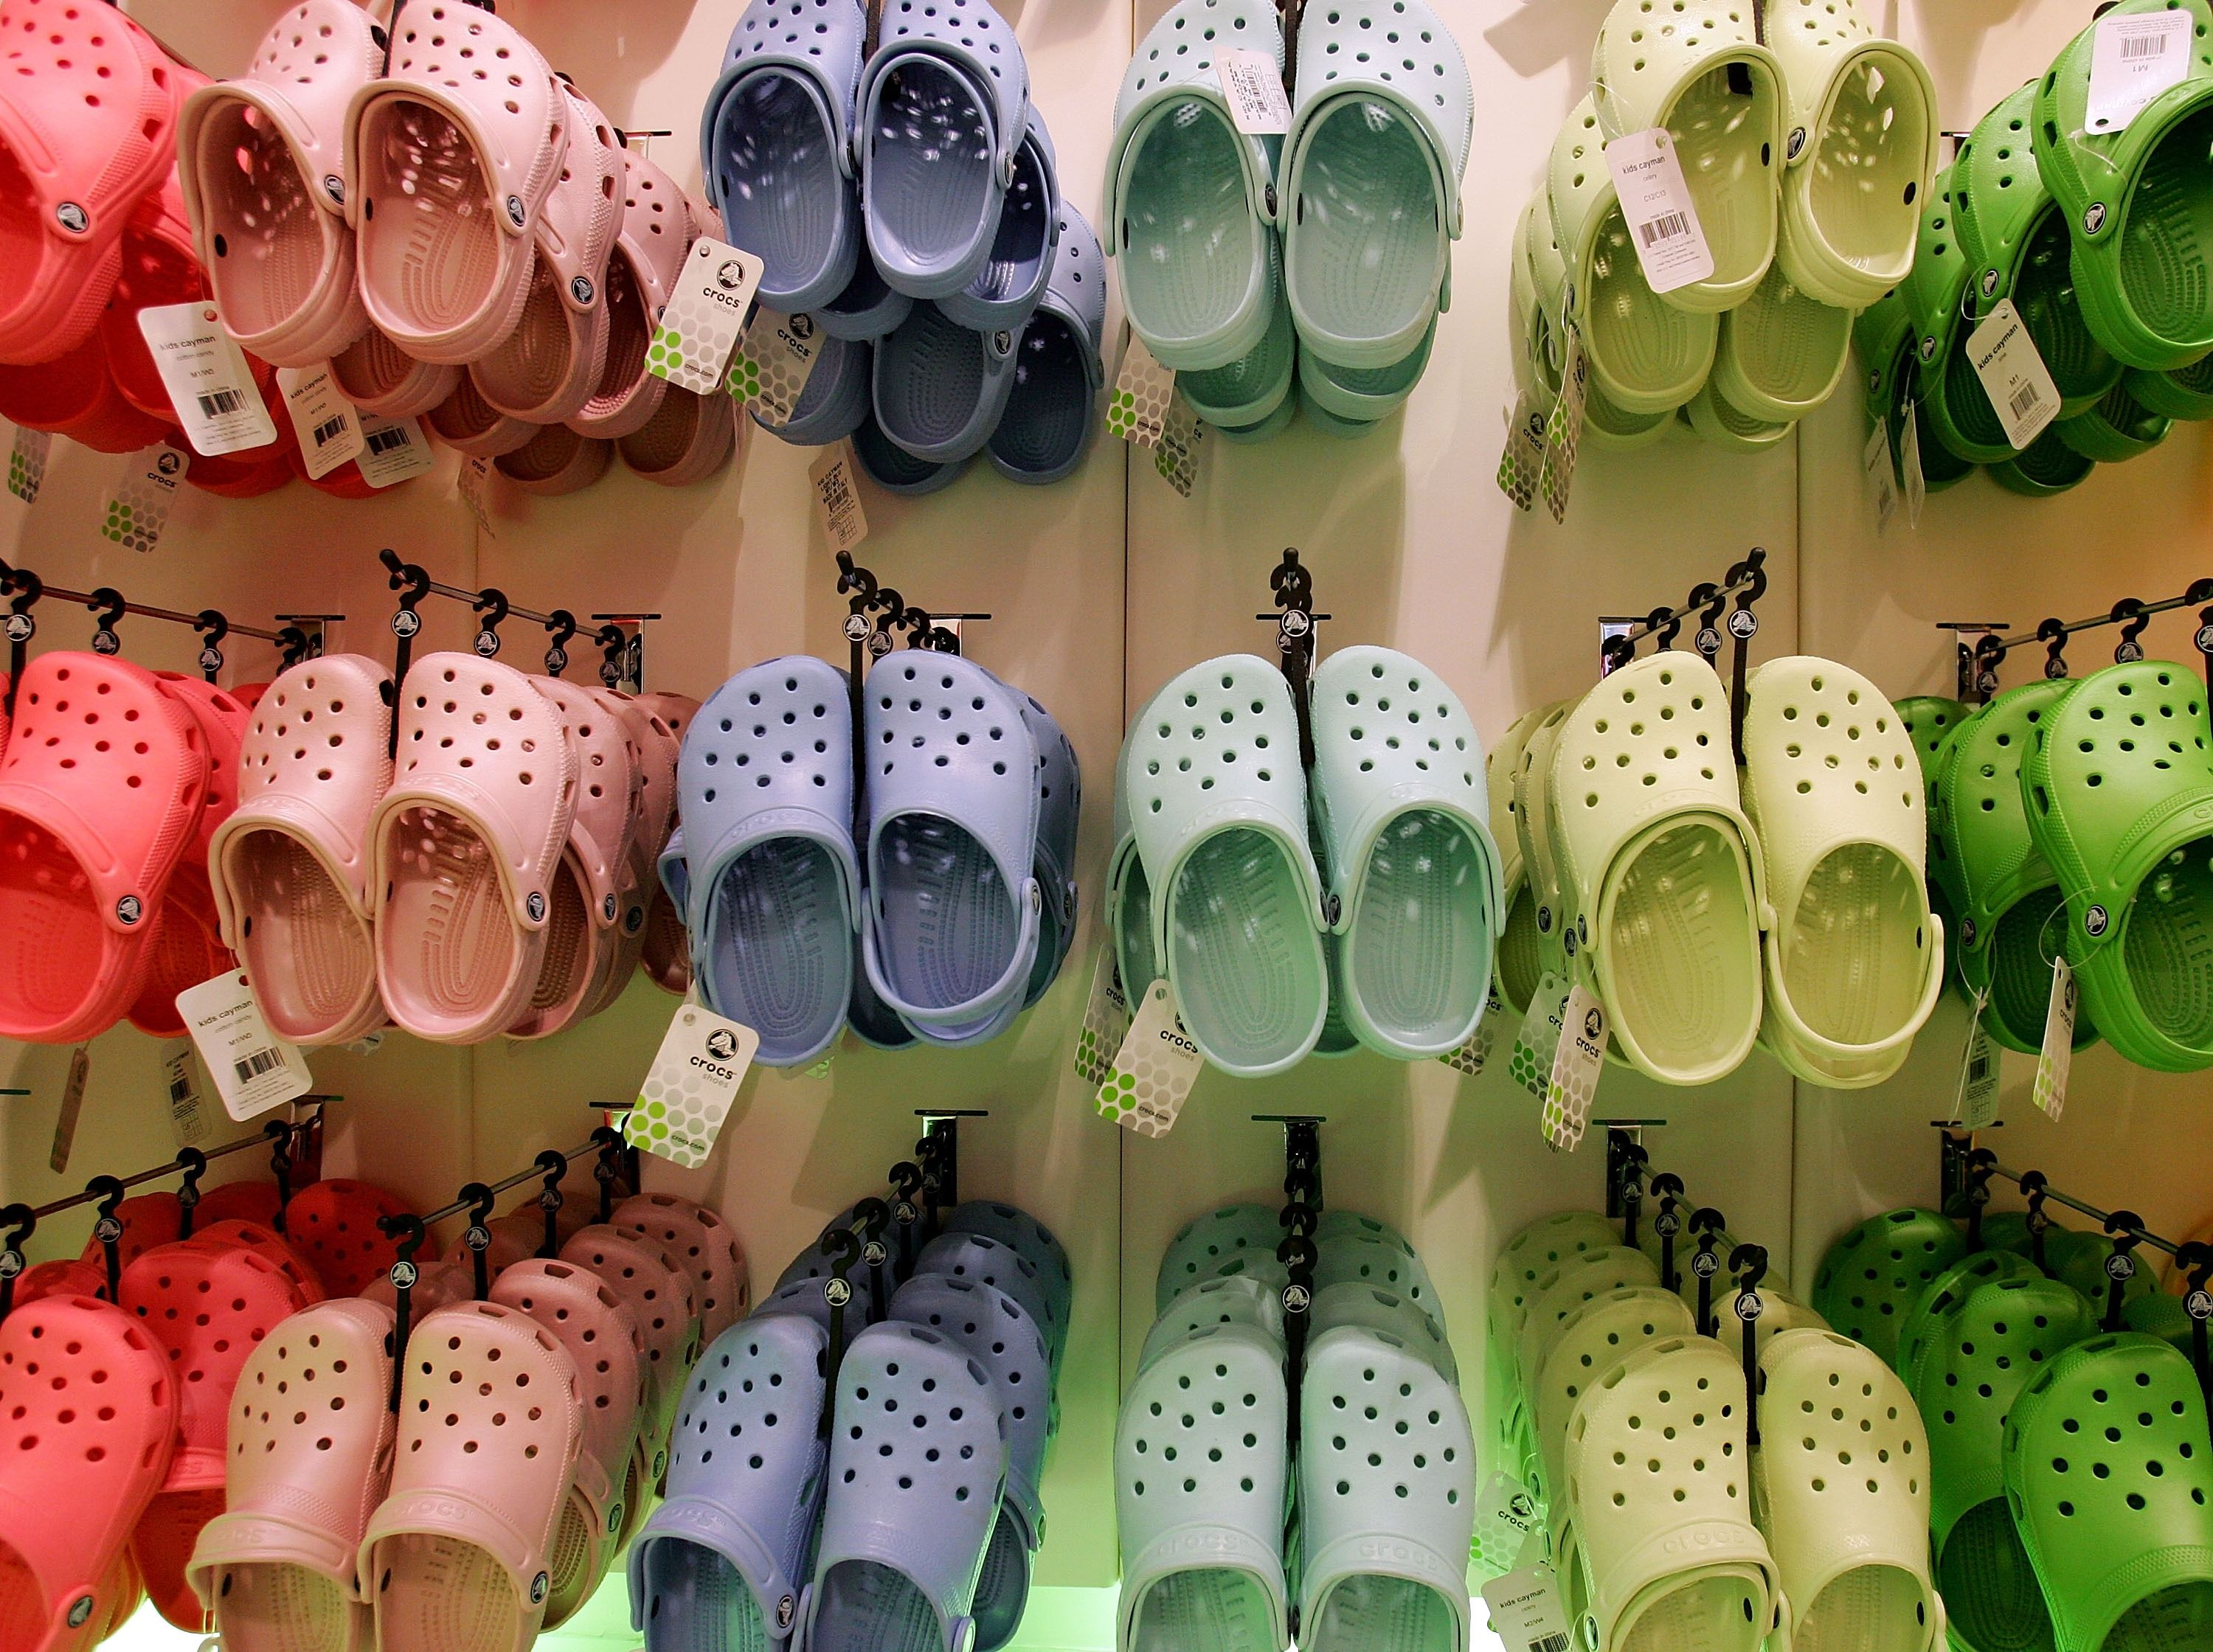 Should You Buy Crocs? Here Are the Pros